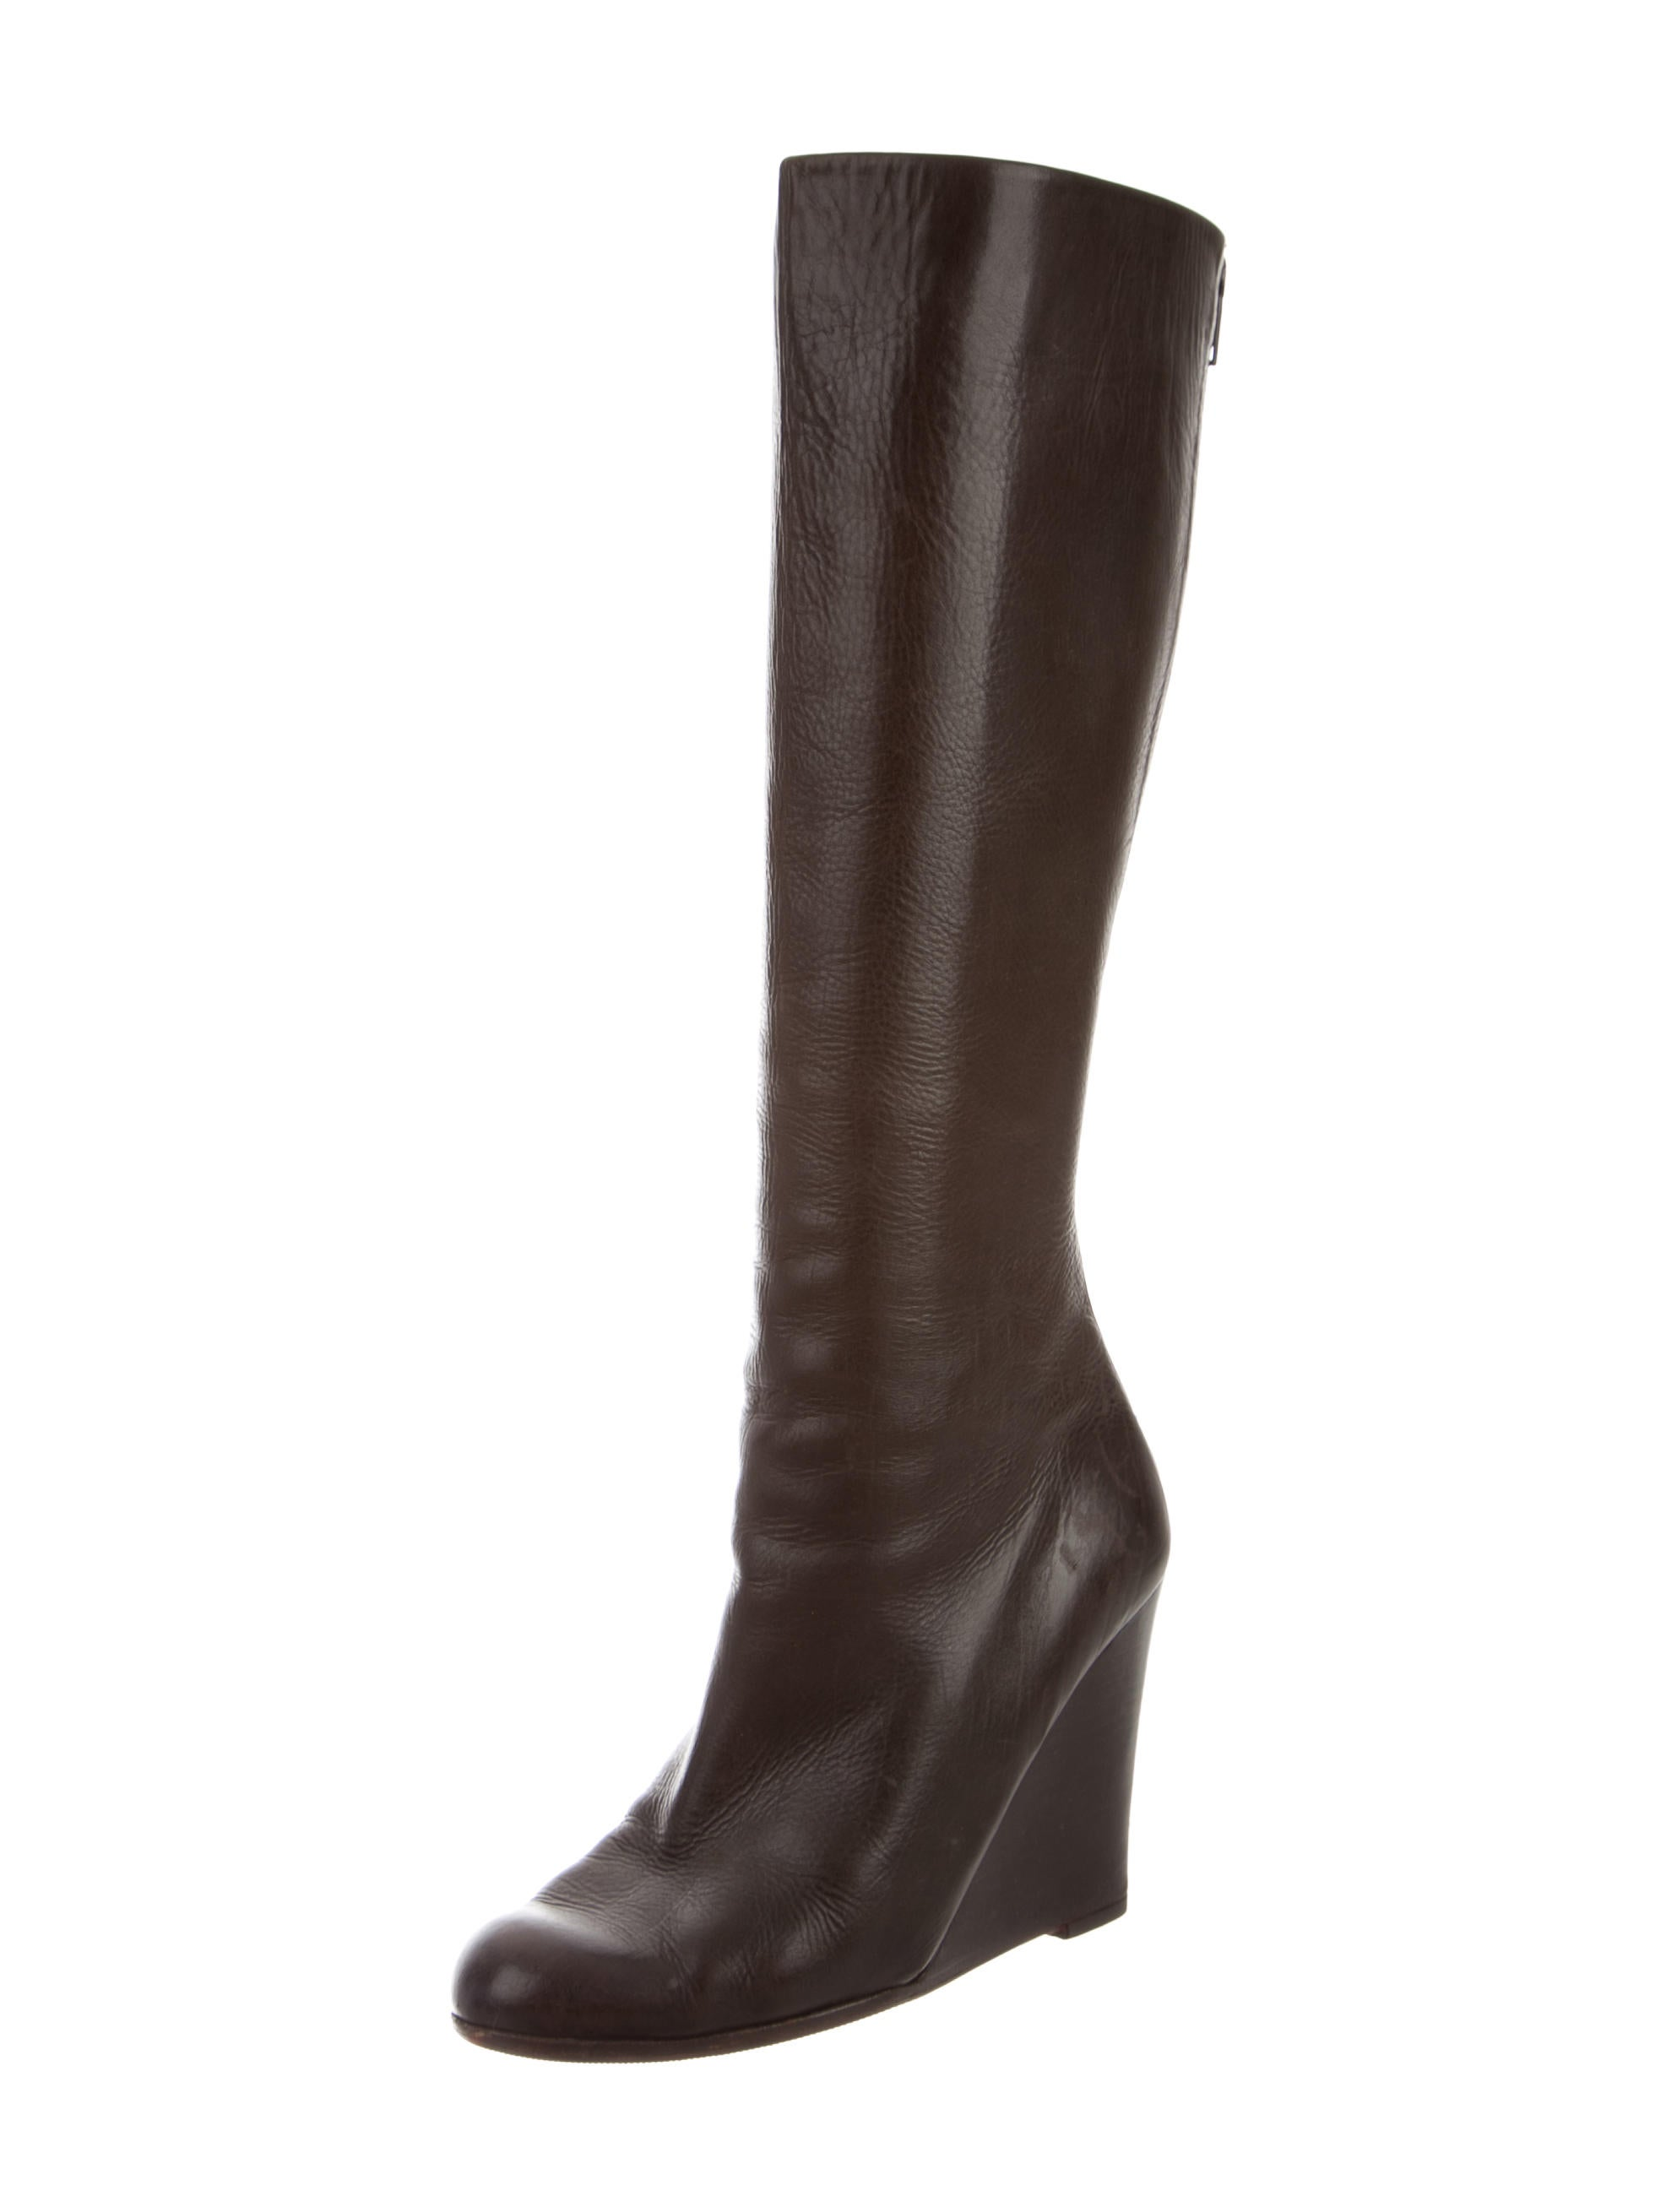 christian louboutin leather wedge knee high boots shoes